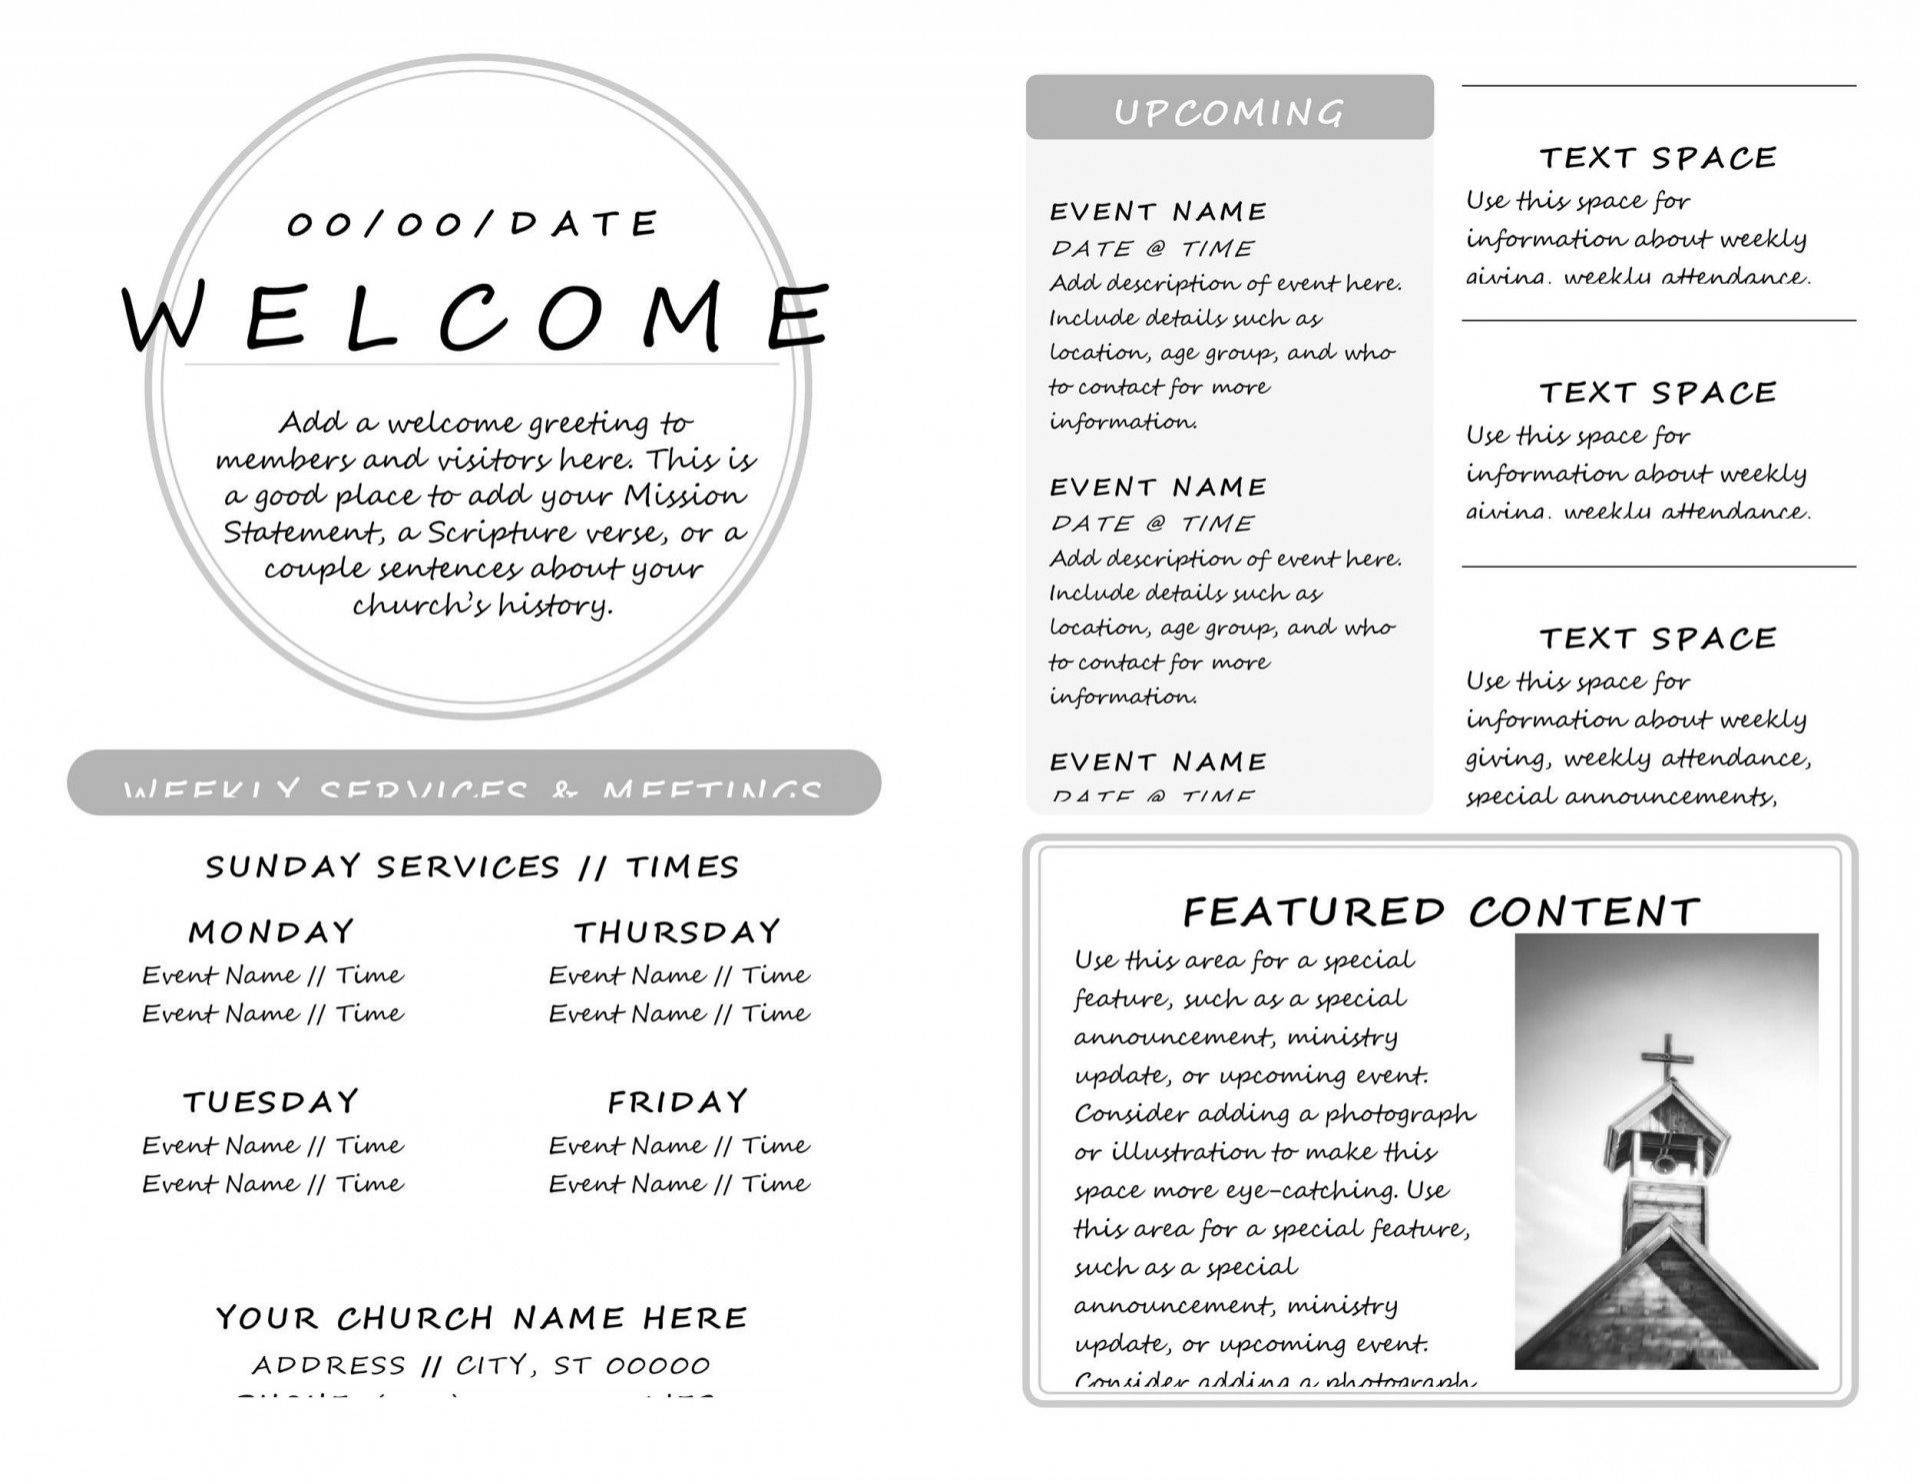 007 Awful Free Church Program Template Doc Highest Quality 1920